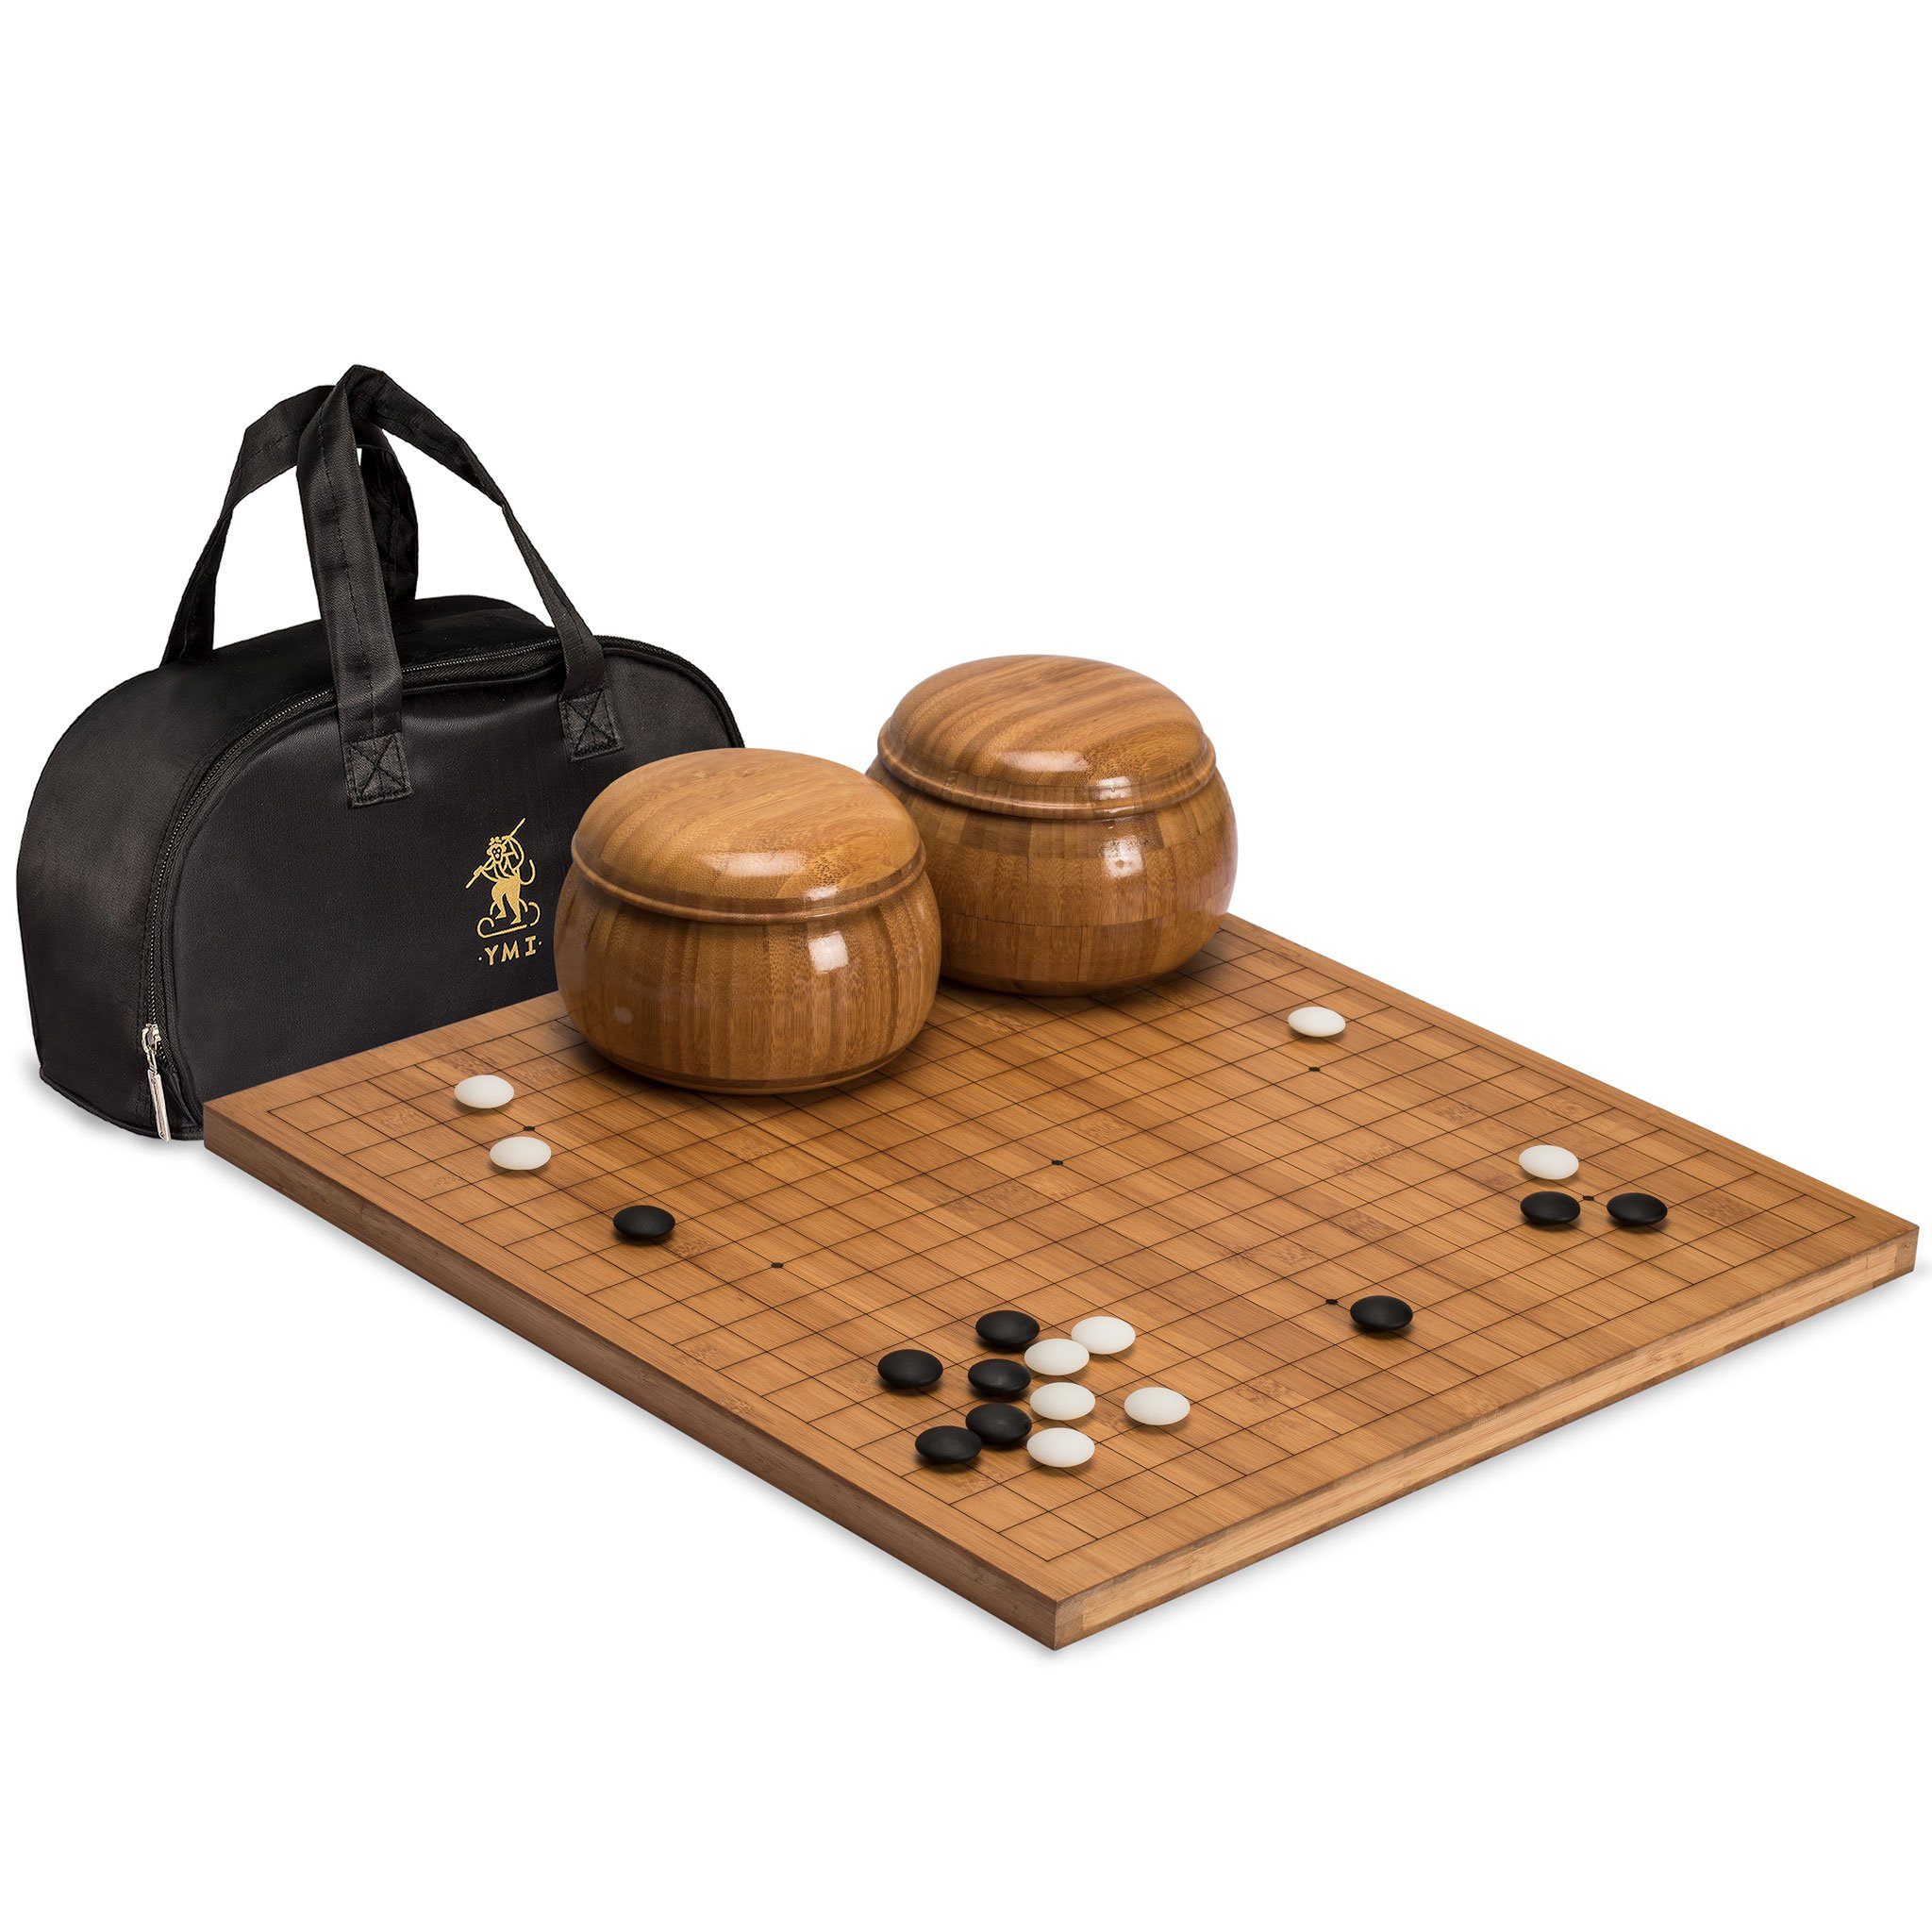 Go Game Set with Etched Bamboo Go Board (0.8 Inch Thick), Double Convex Yunzi Stones (Size 33) and Bamboo Bowls by Yellow Mountain Imports